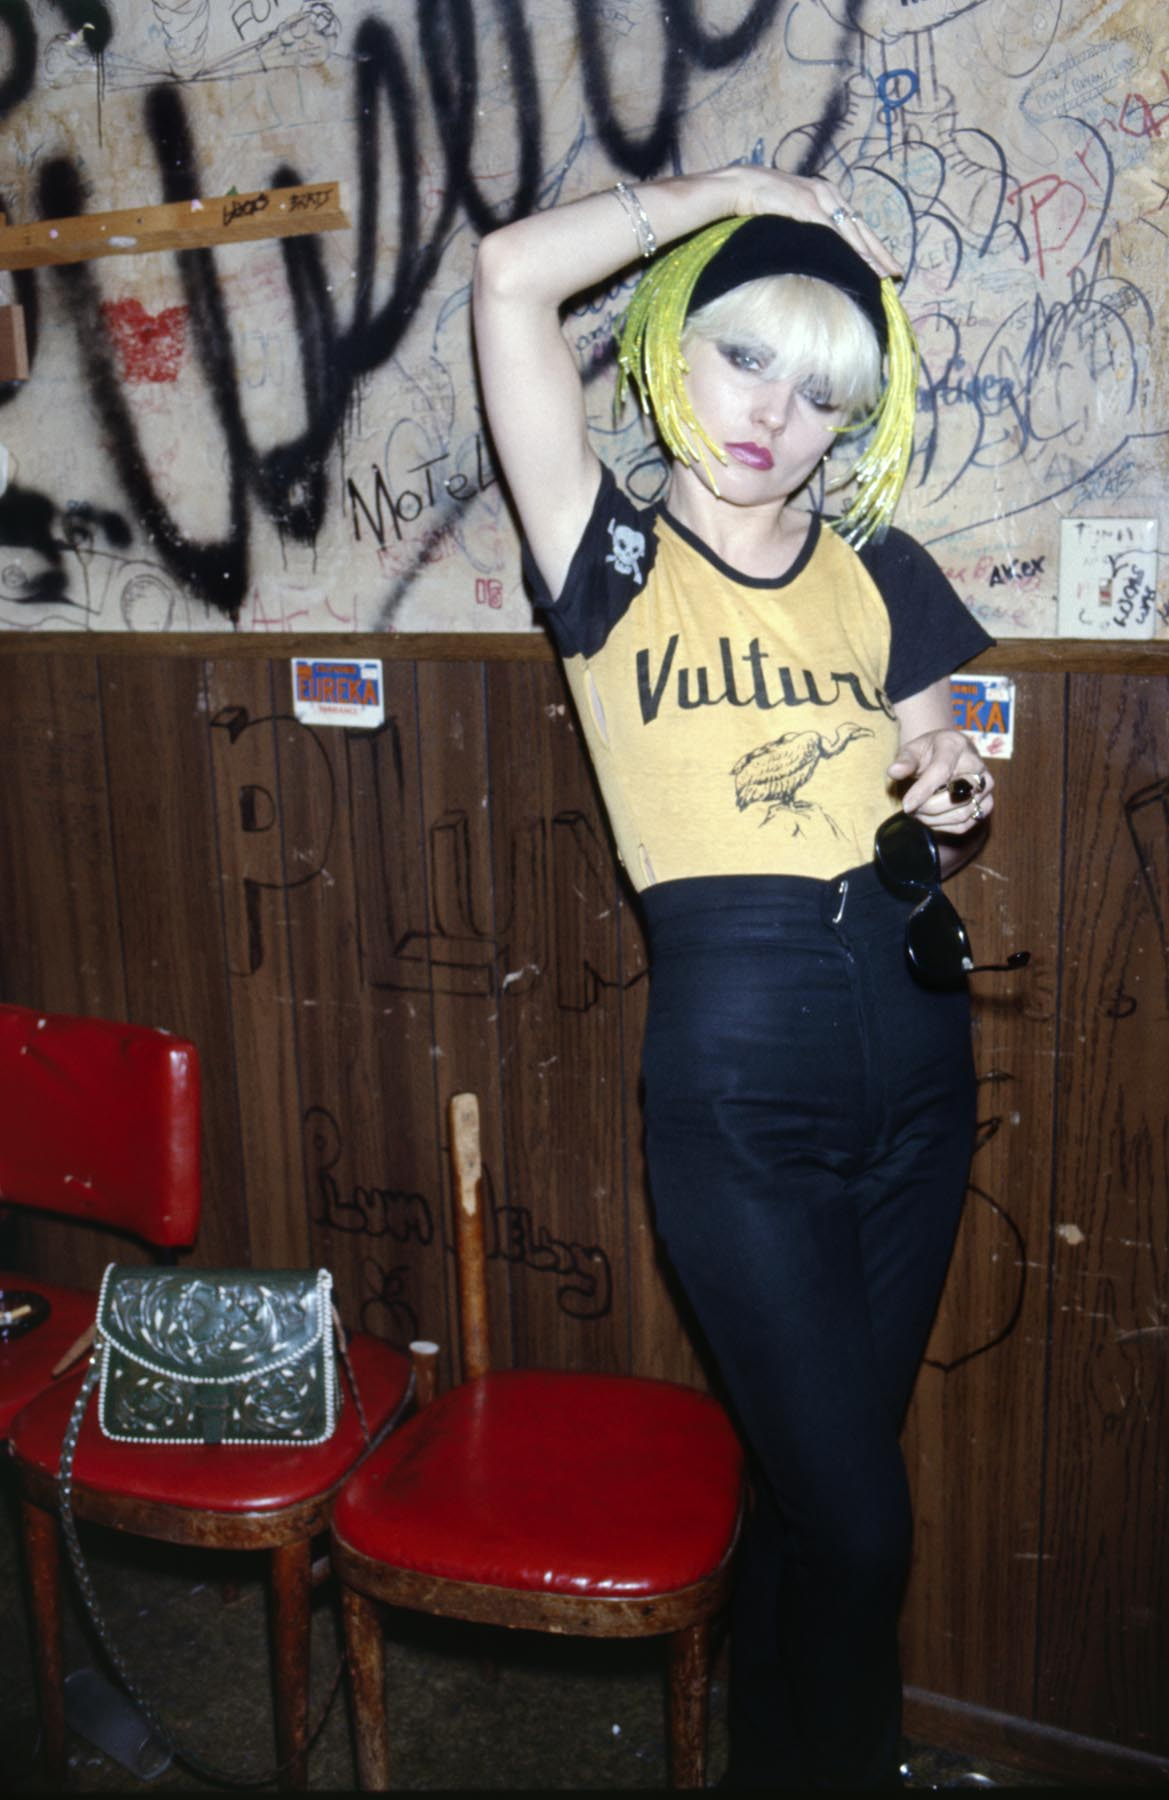 DEBBIE HARRY BY BRAD ELTERMAN IN 1977